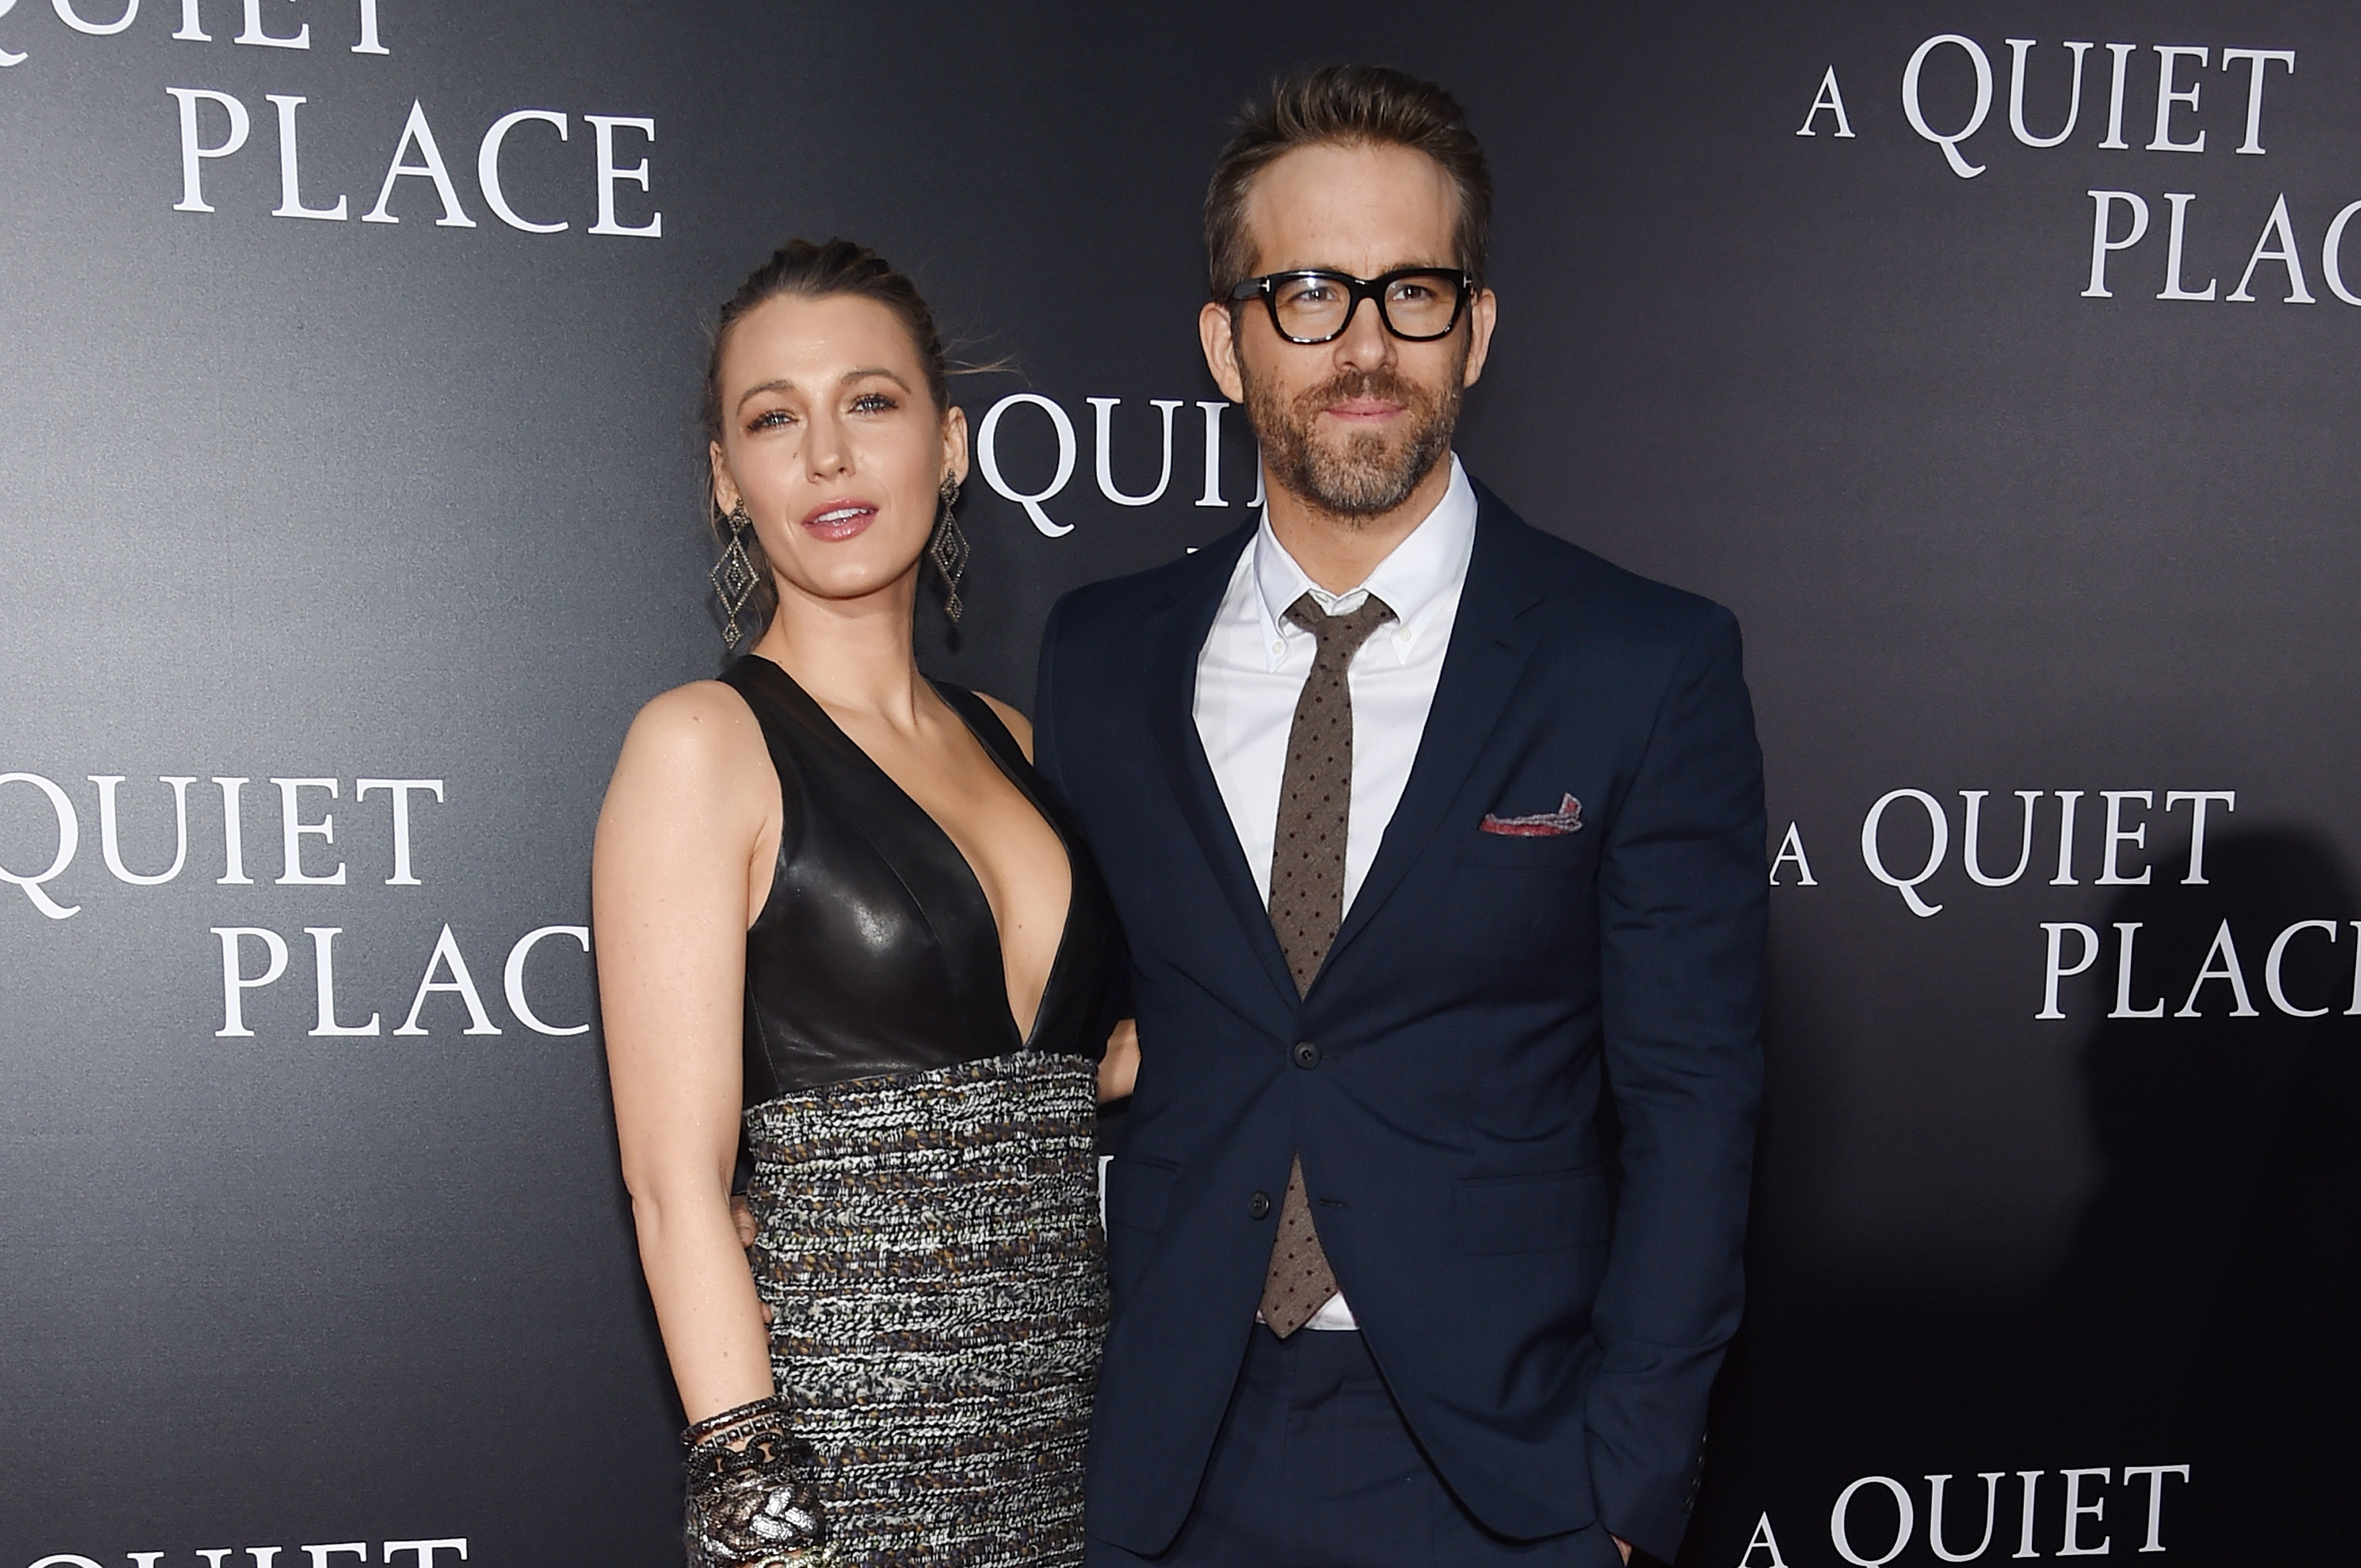 Blake Lively and Ryan Reynolds attend the premiere for 'A Quiet Place' at AMC Lincoln Square Theater on April 2, 2018 in New York City. (Photo by Jamie McCarthy/Getty Images)